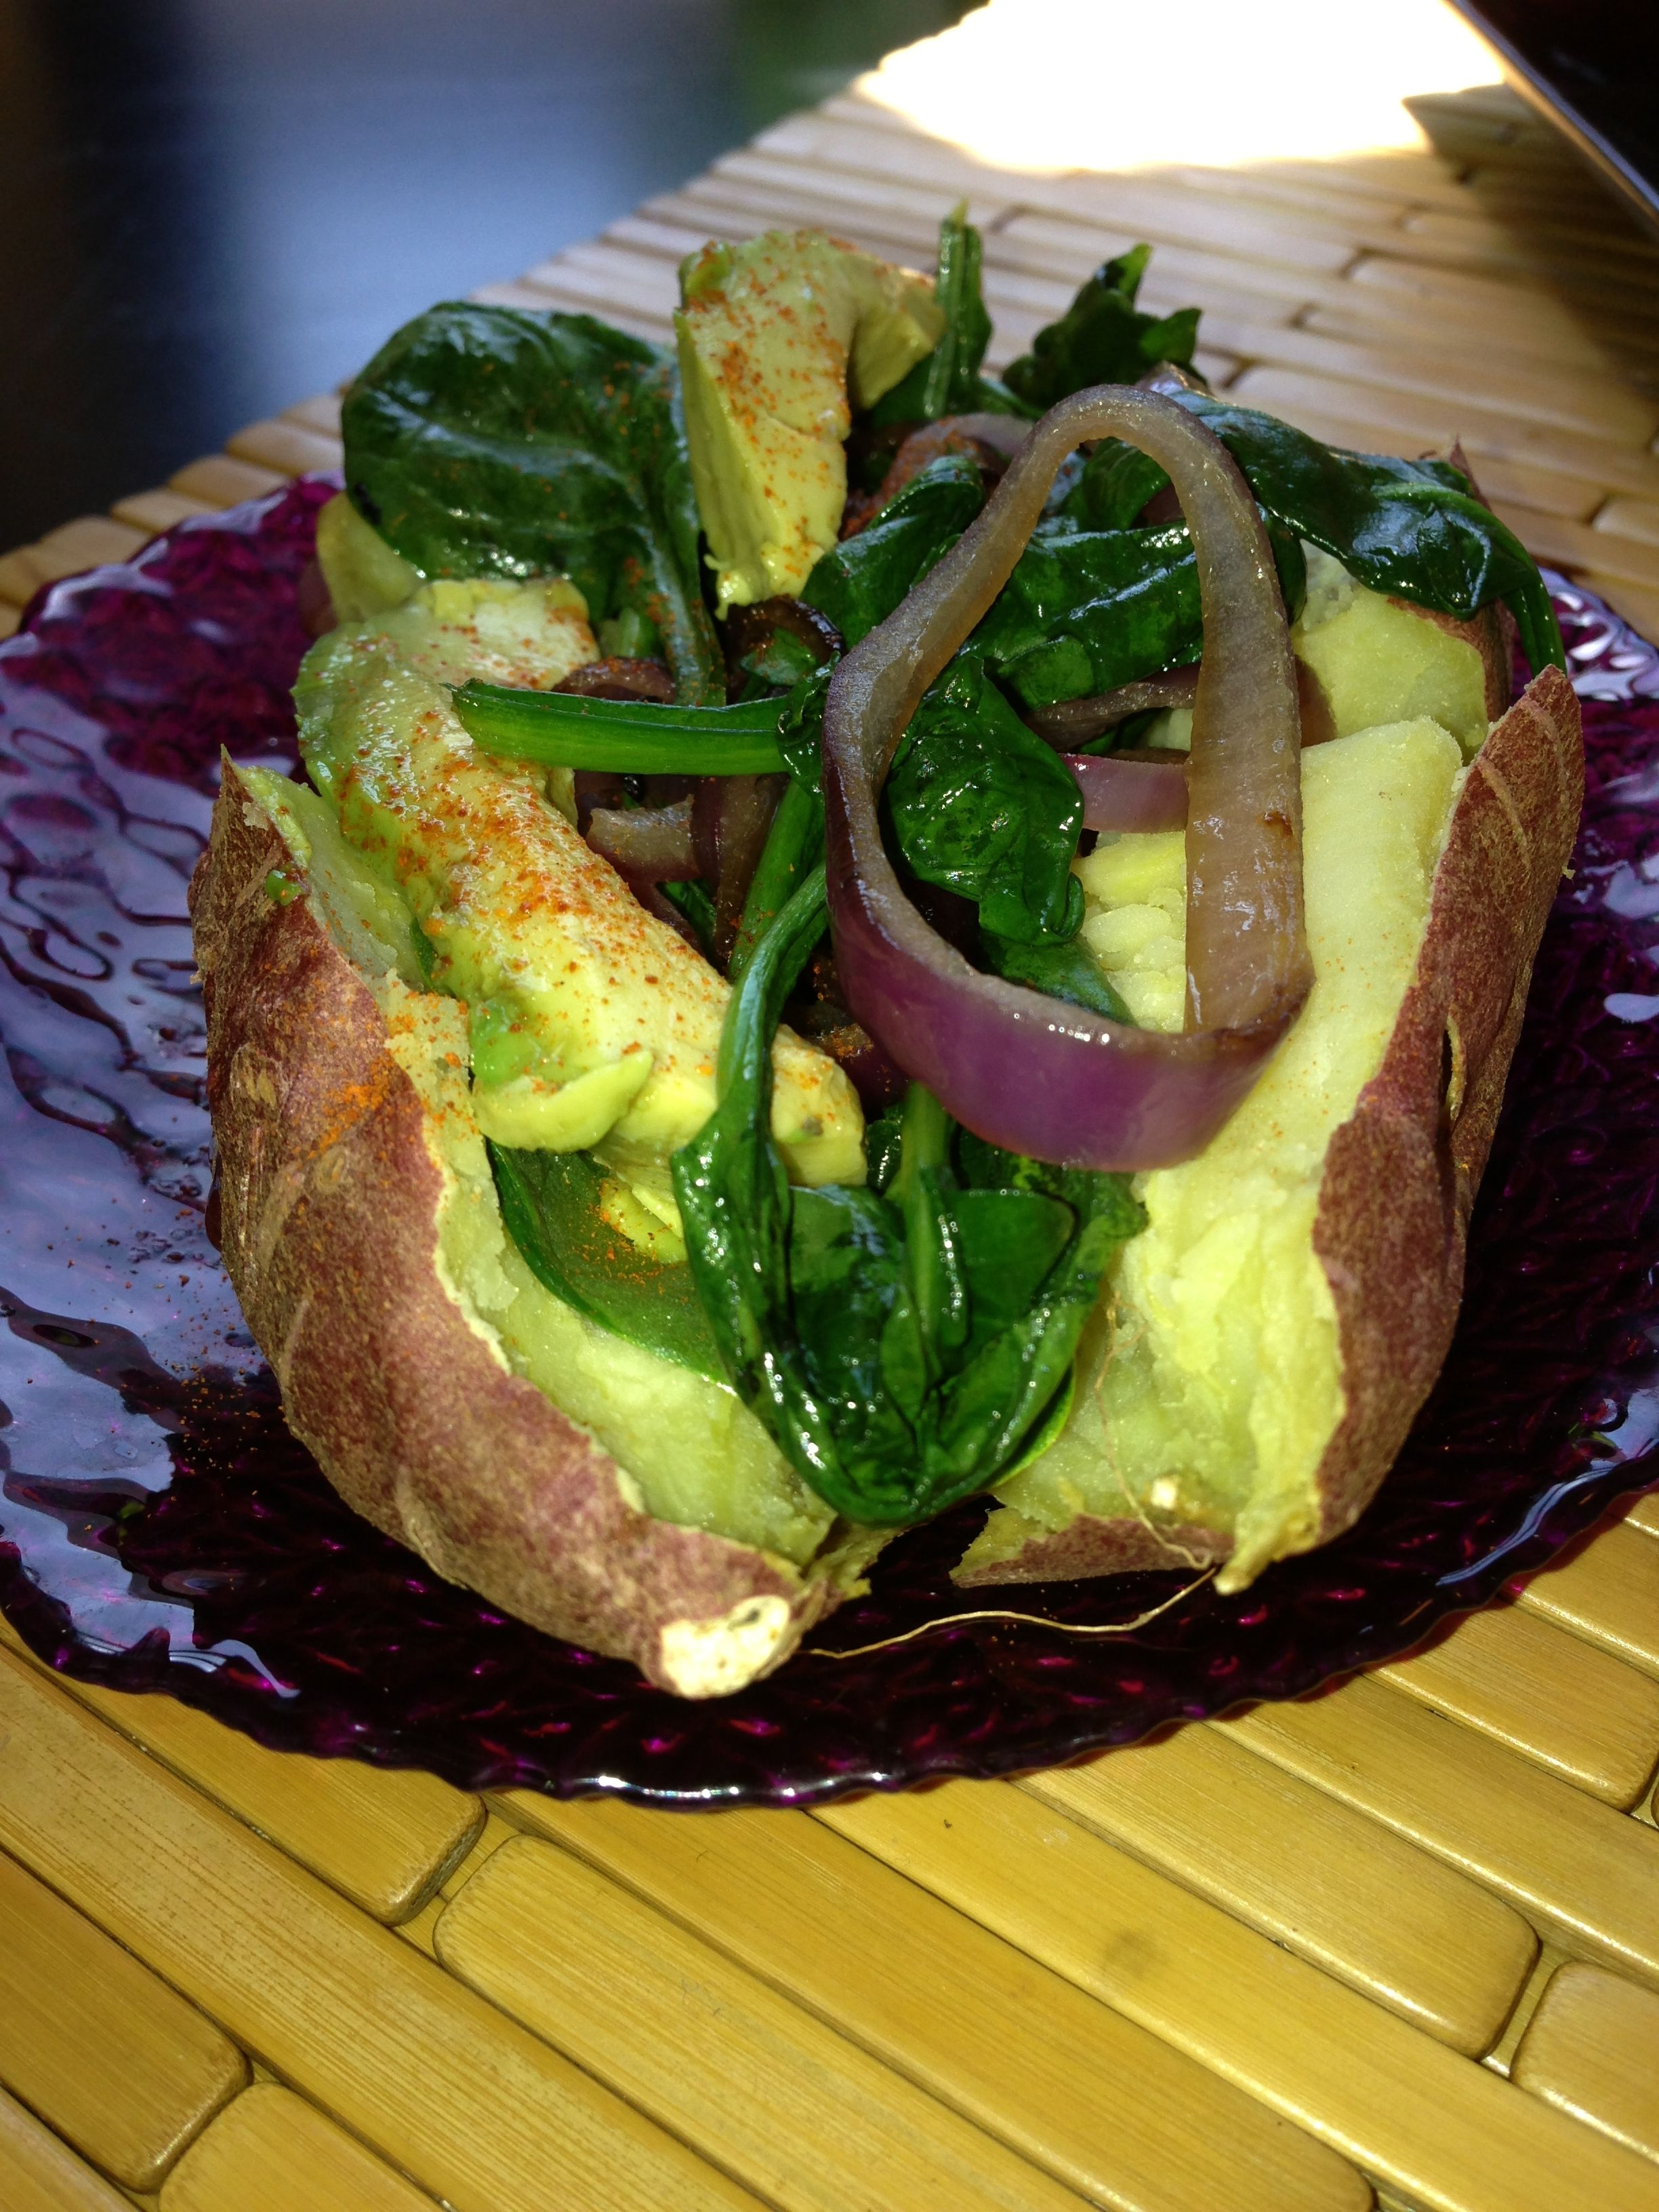 Stuffed Japanese sweet potato with sauteed greens, onions